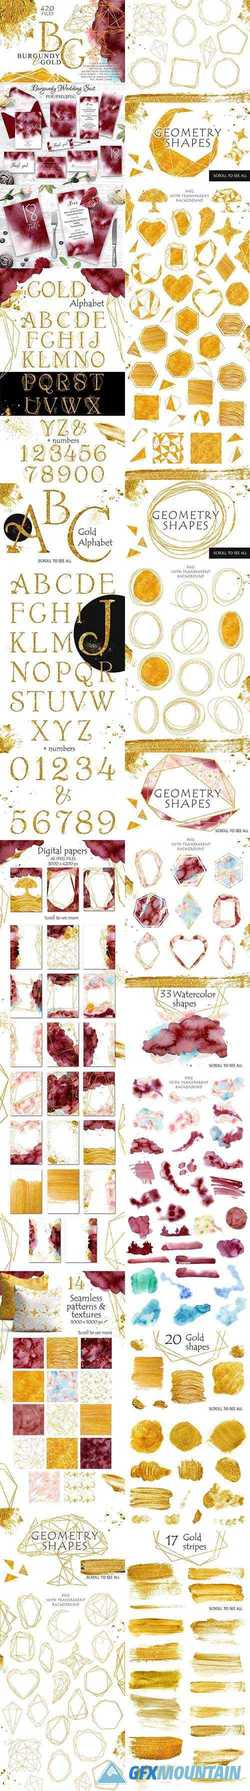 Burgundy & Gold Graphic Set 2809045